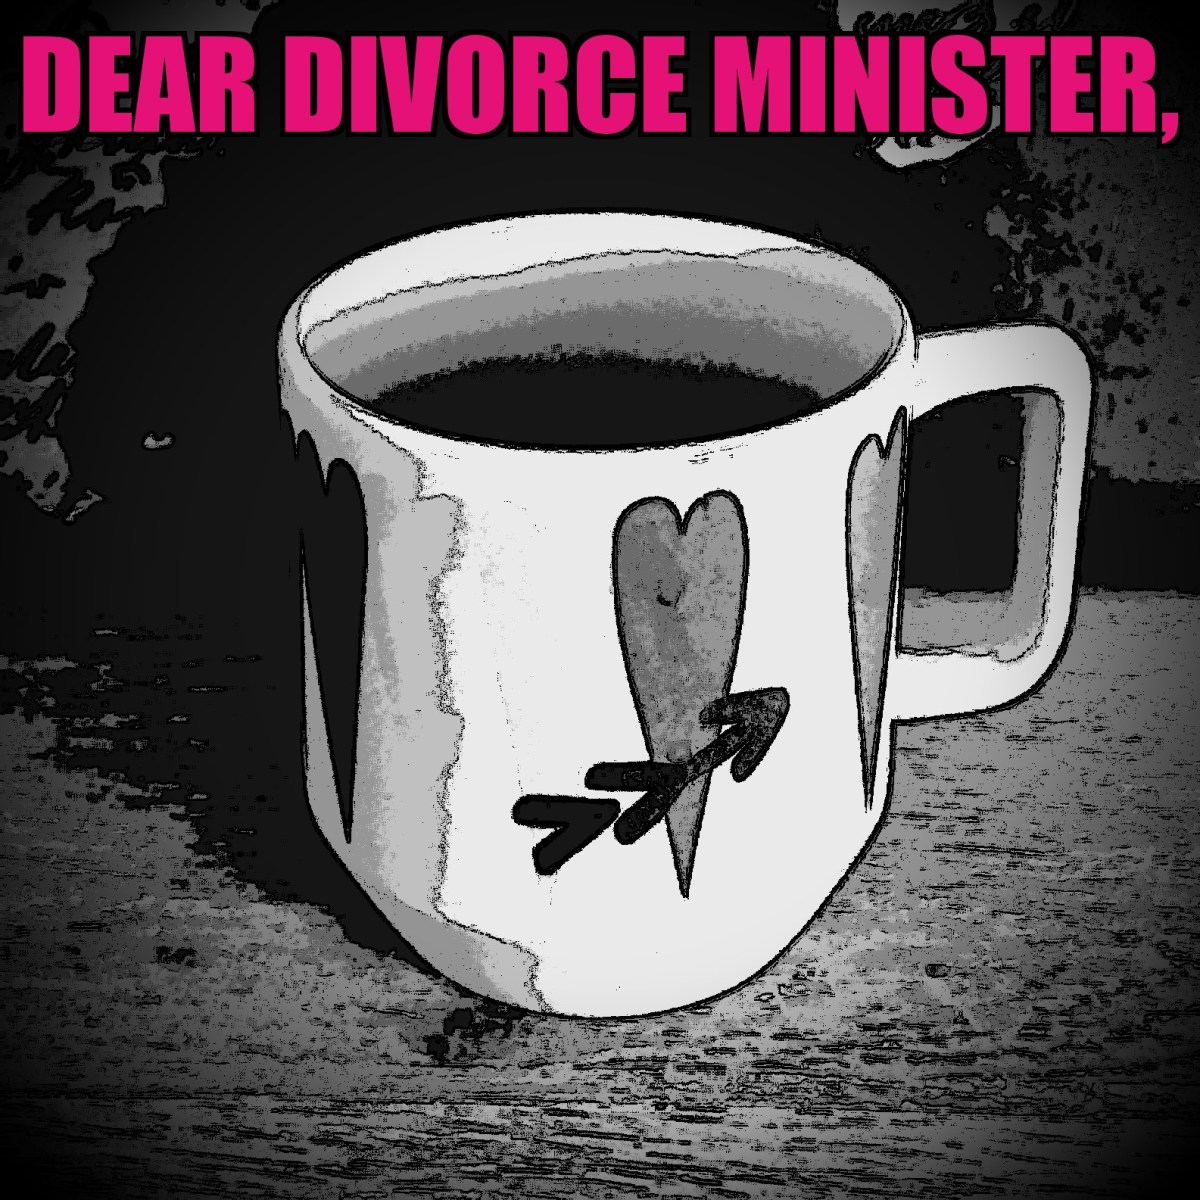 Dear Divorce Minister, Why are Christians so bad at responding to adultery?